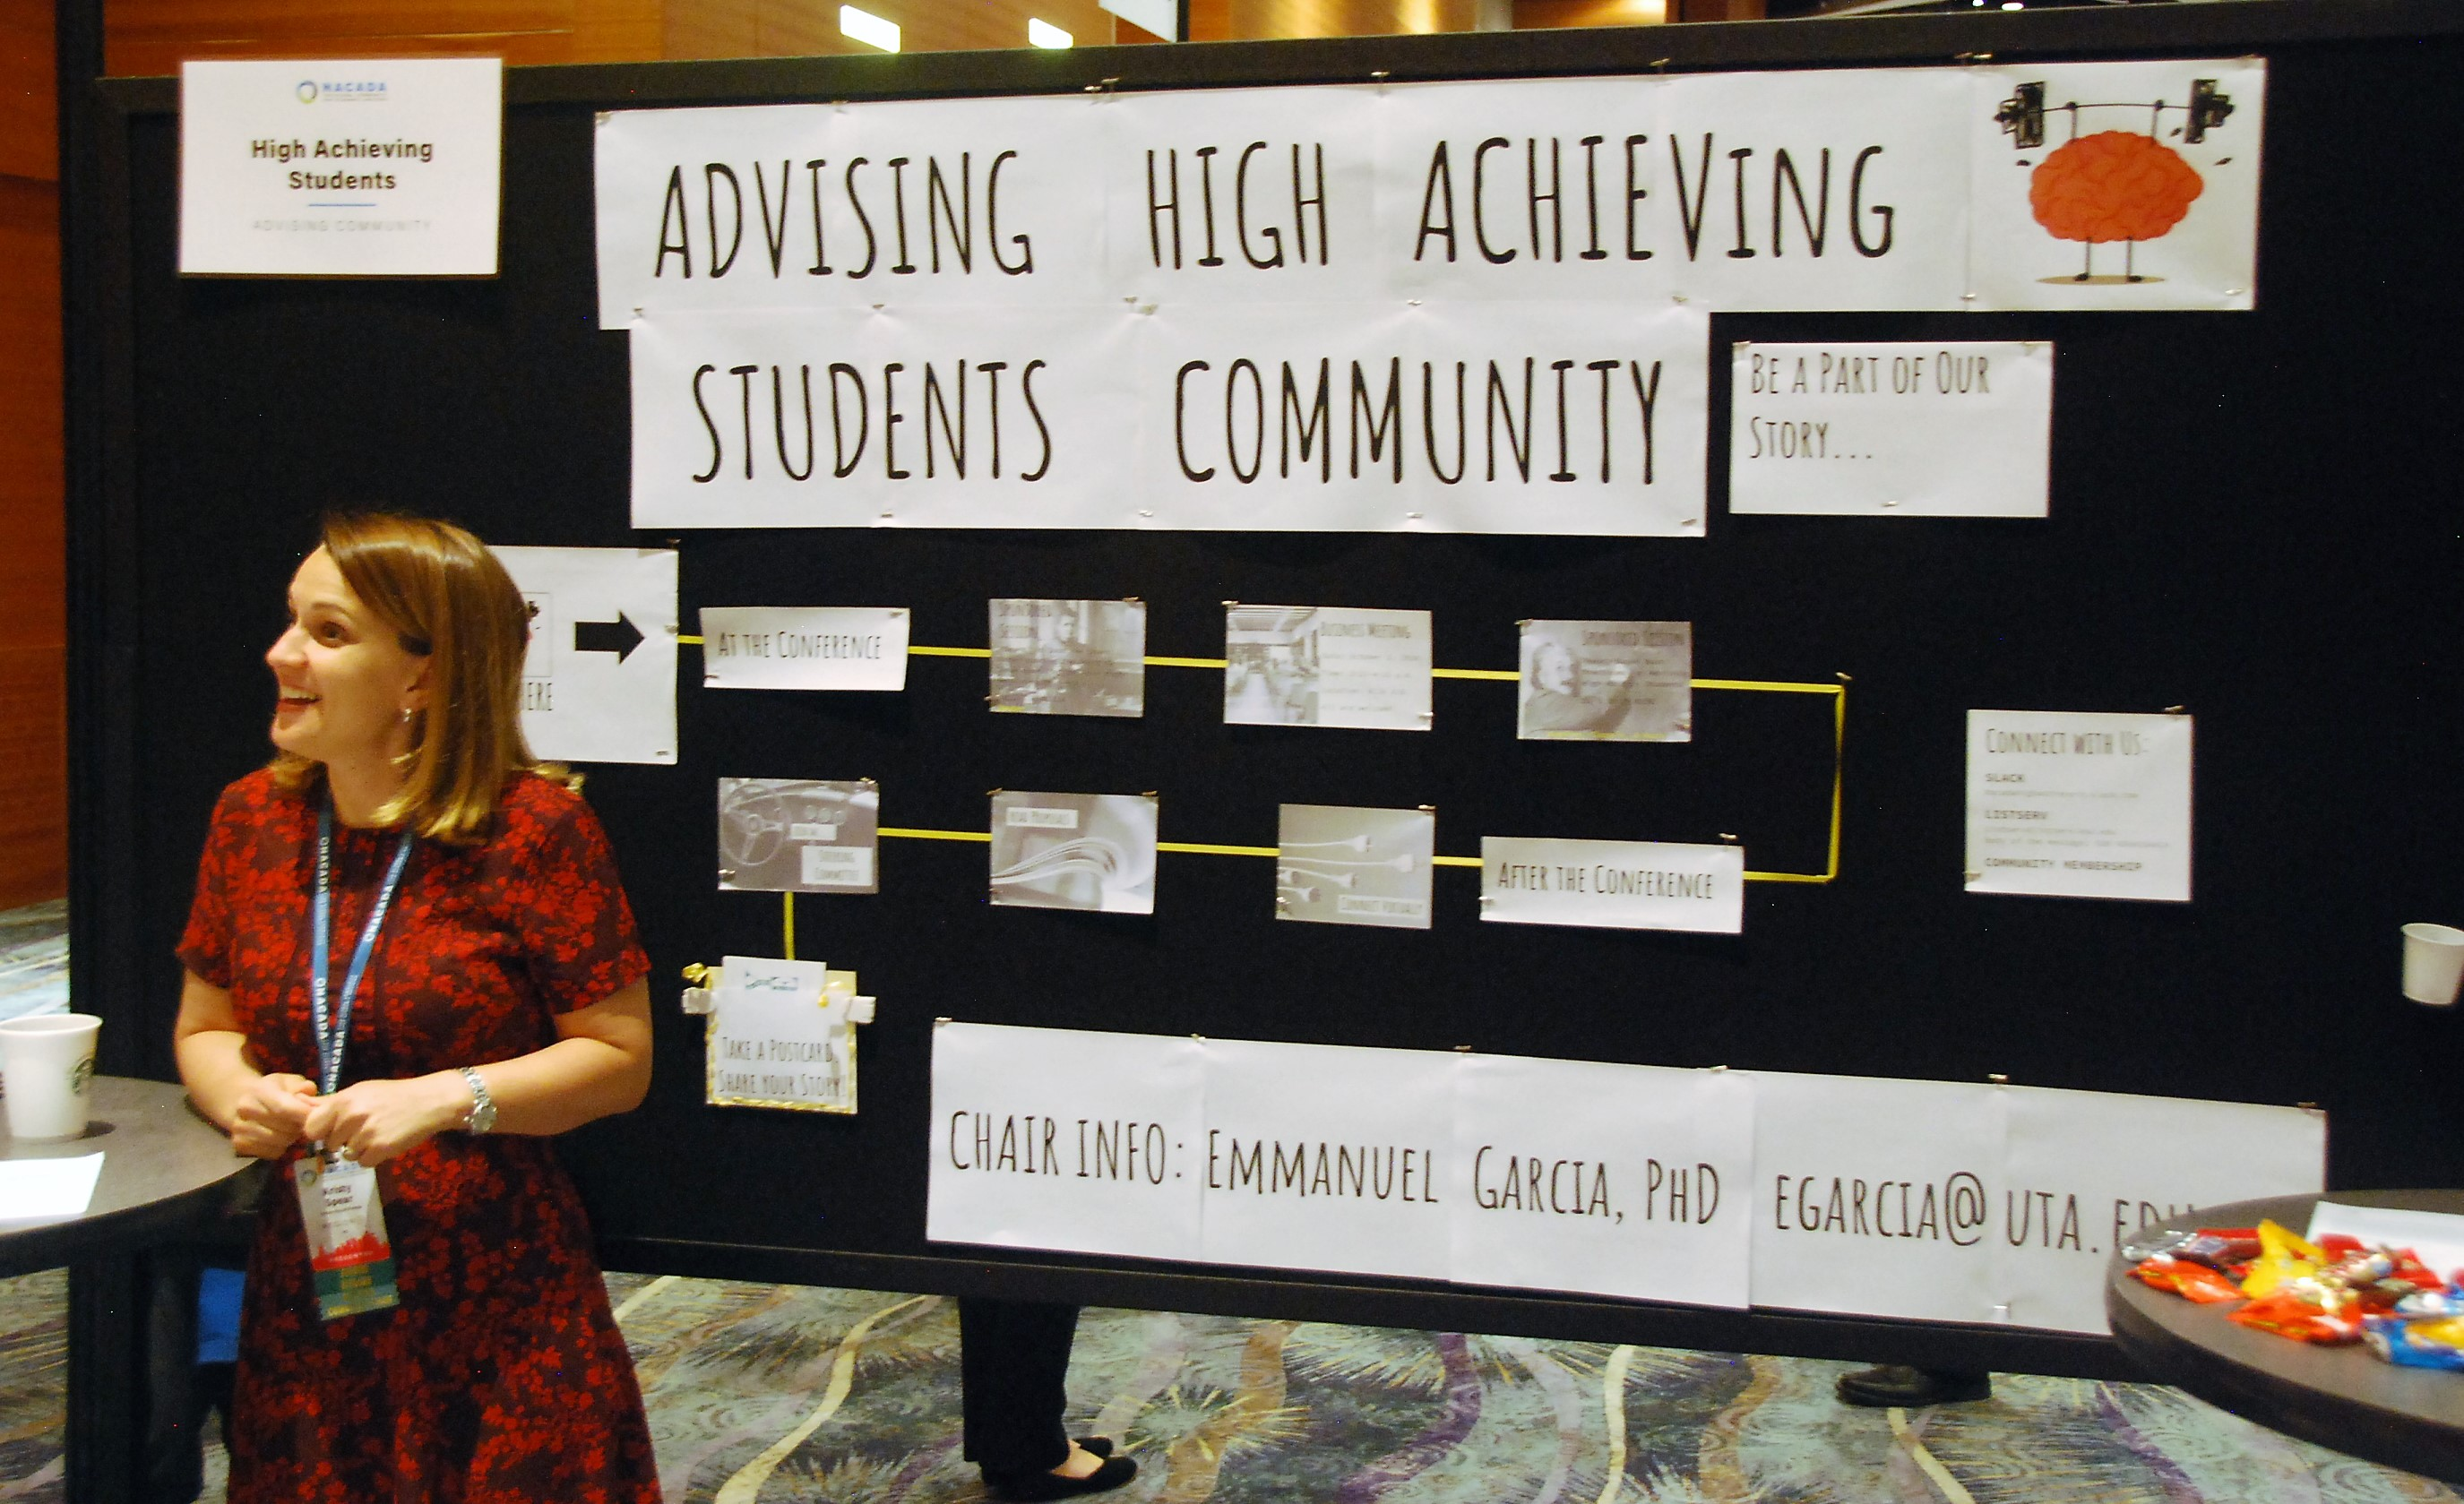 High Achieving Students AC Poster at ACD Fair, Phoenix, 2018